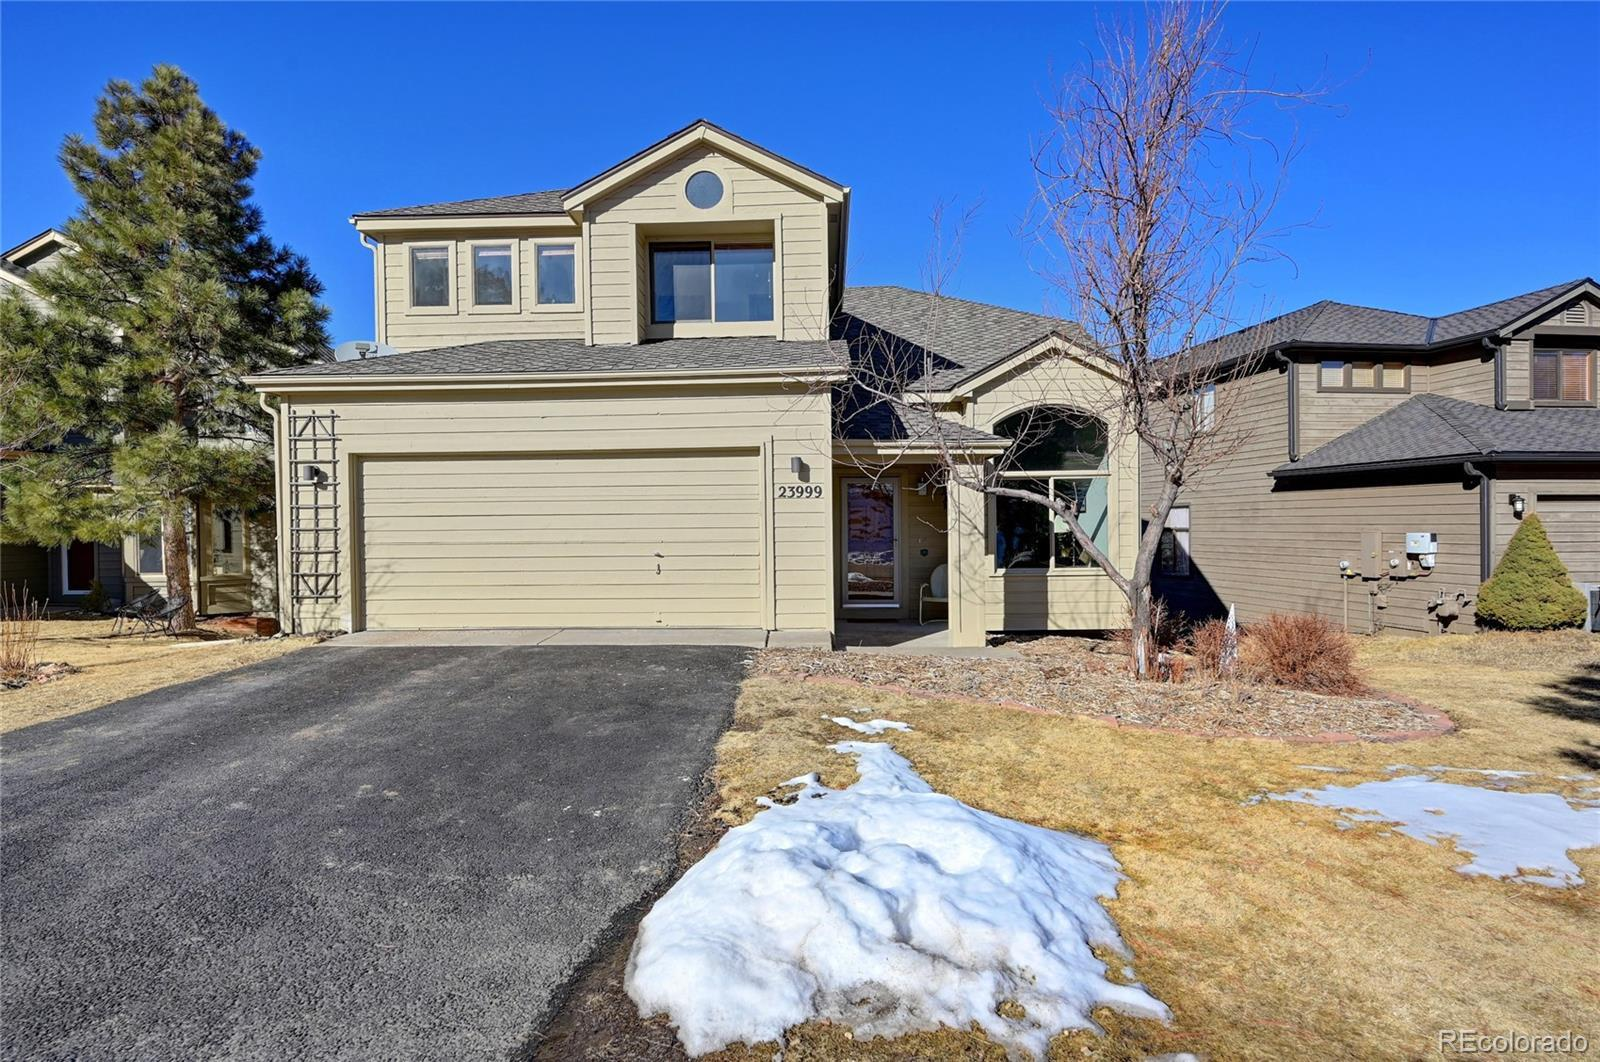 23999 High Meadow Drive, Golden, CO 80401 - #: 3044048